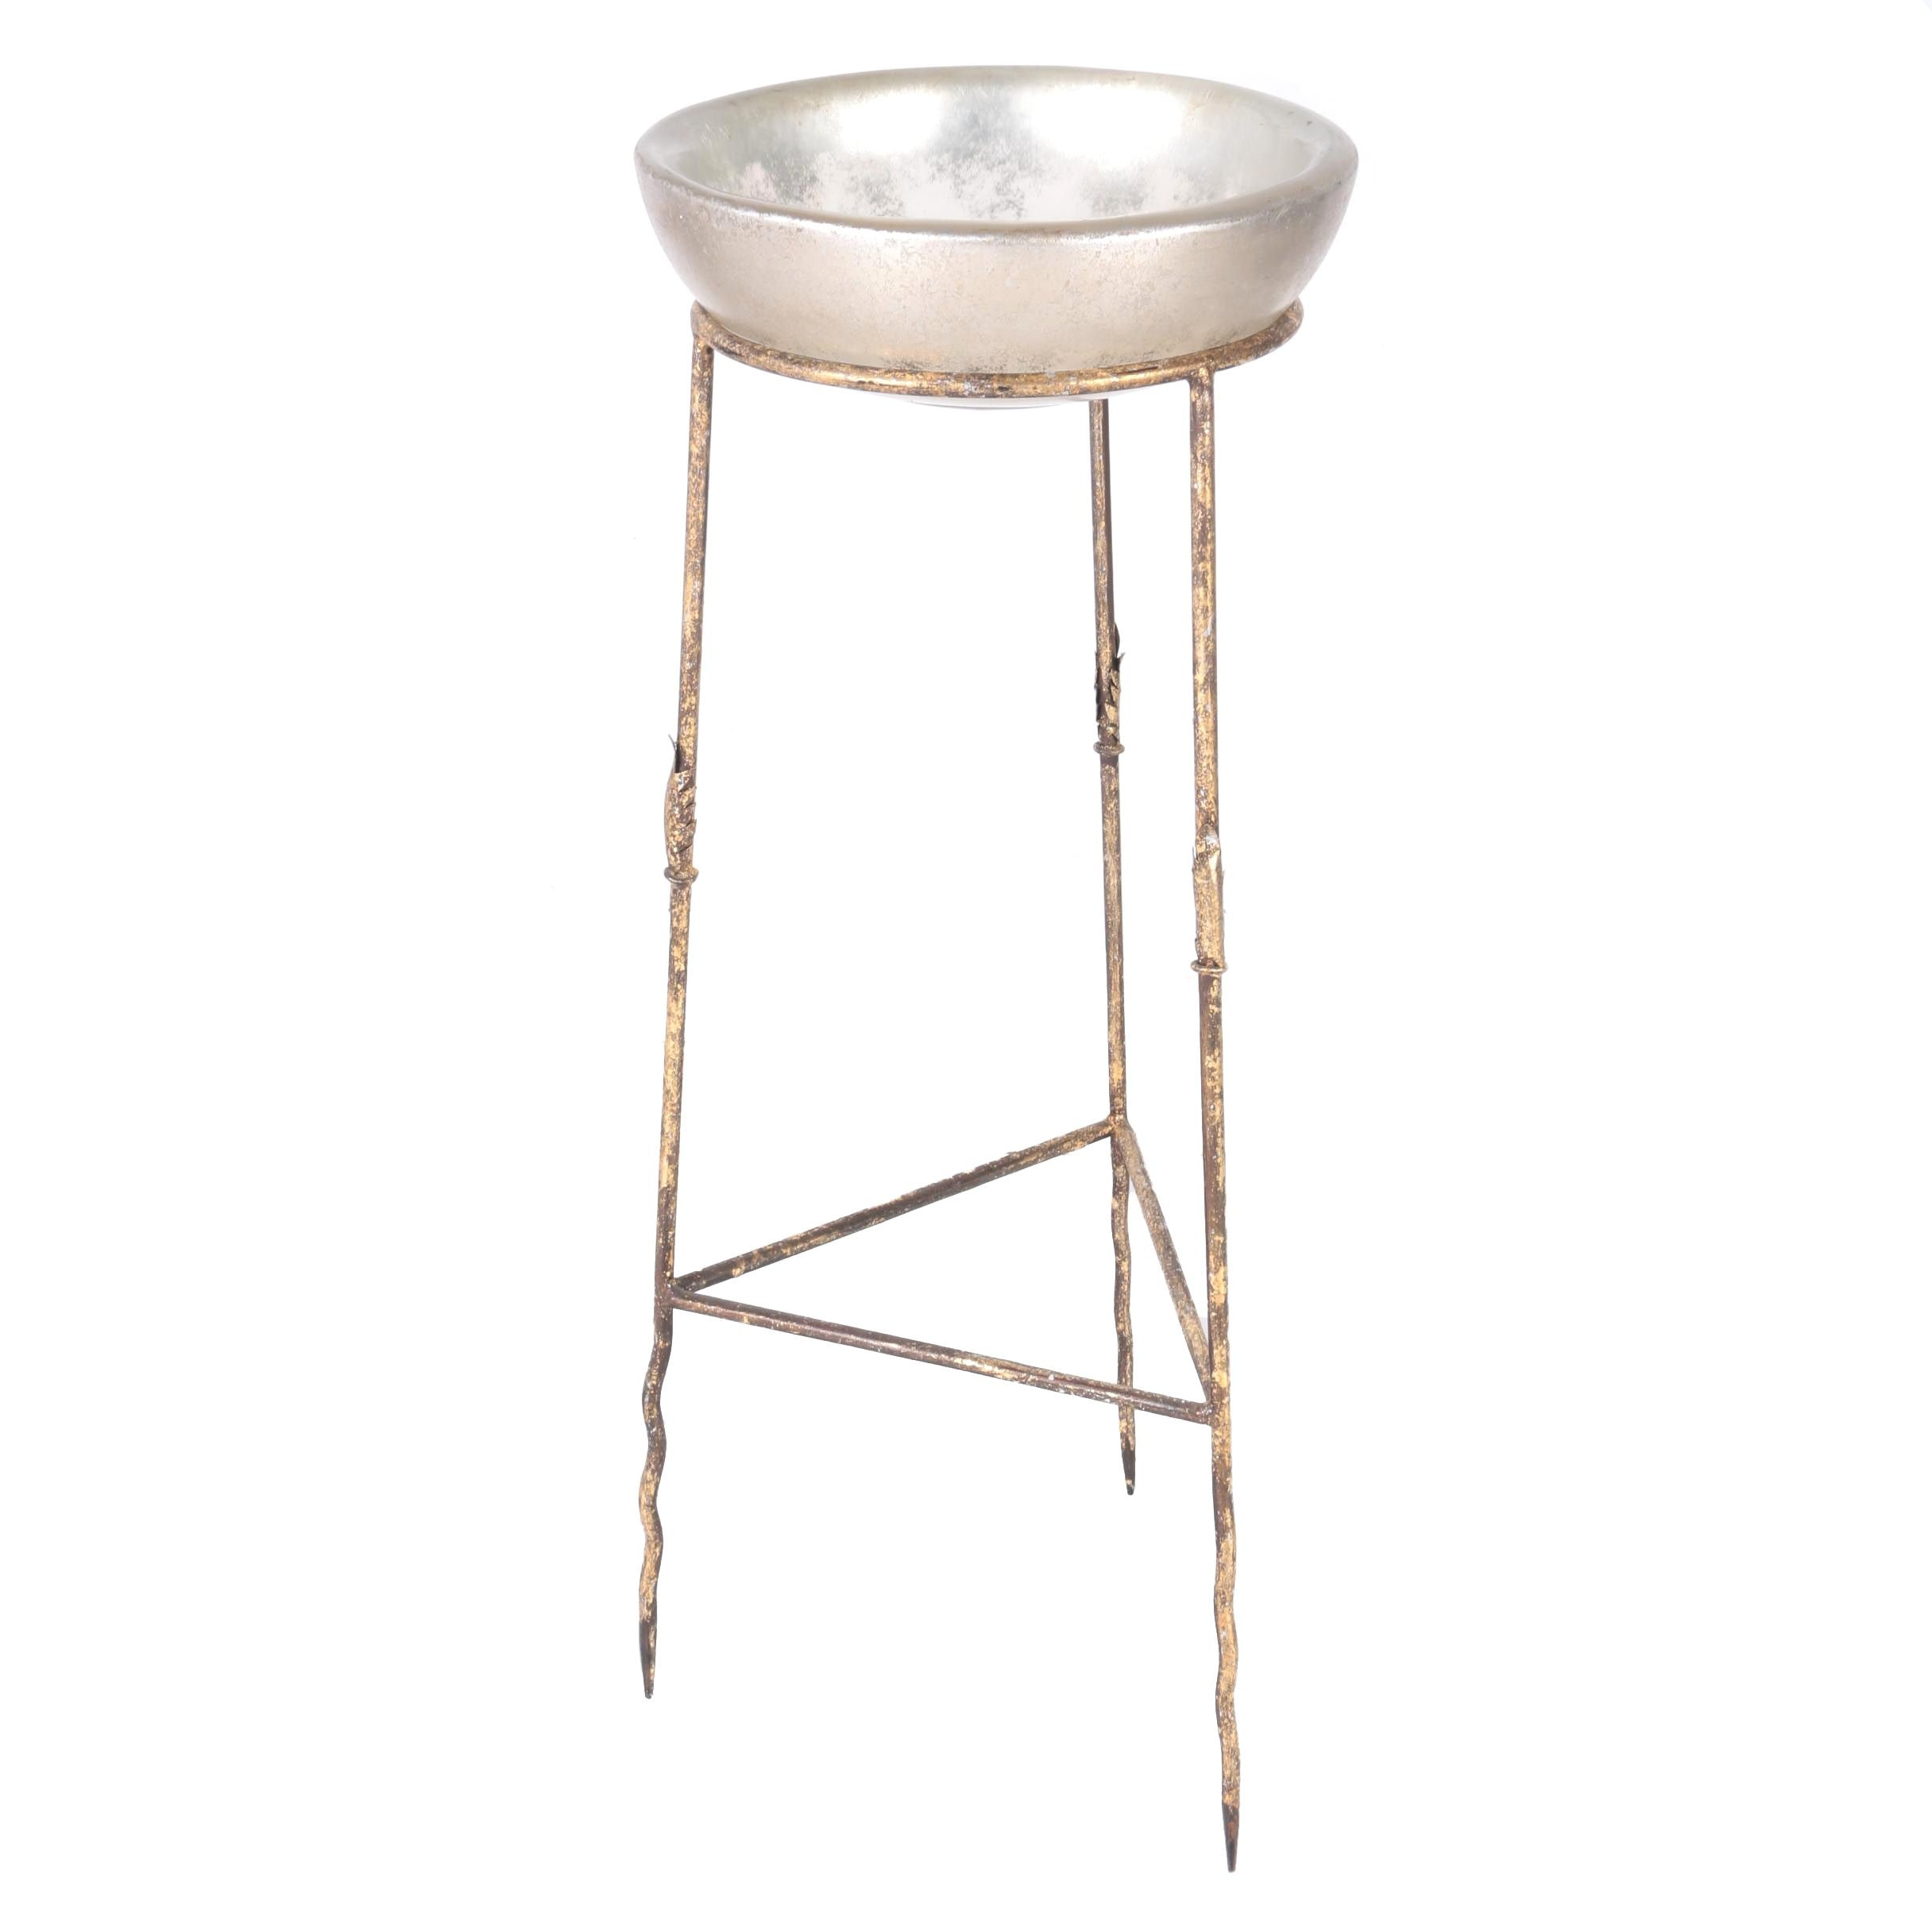 Empire Style Plant Stand with Planter